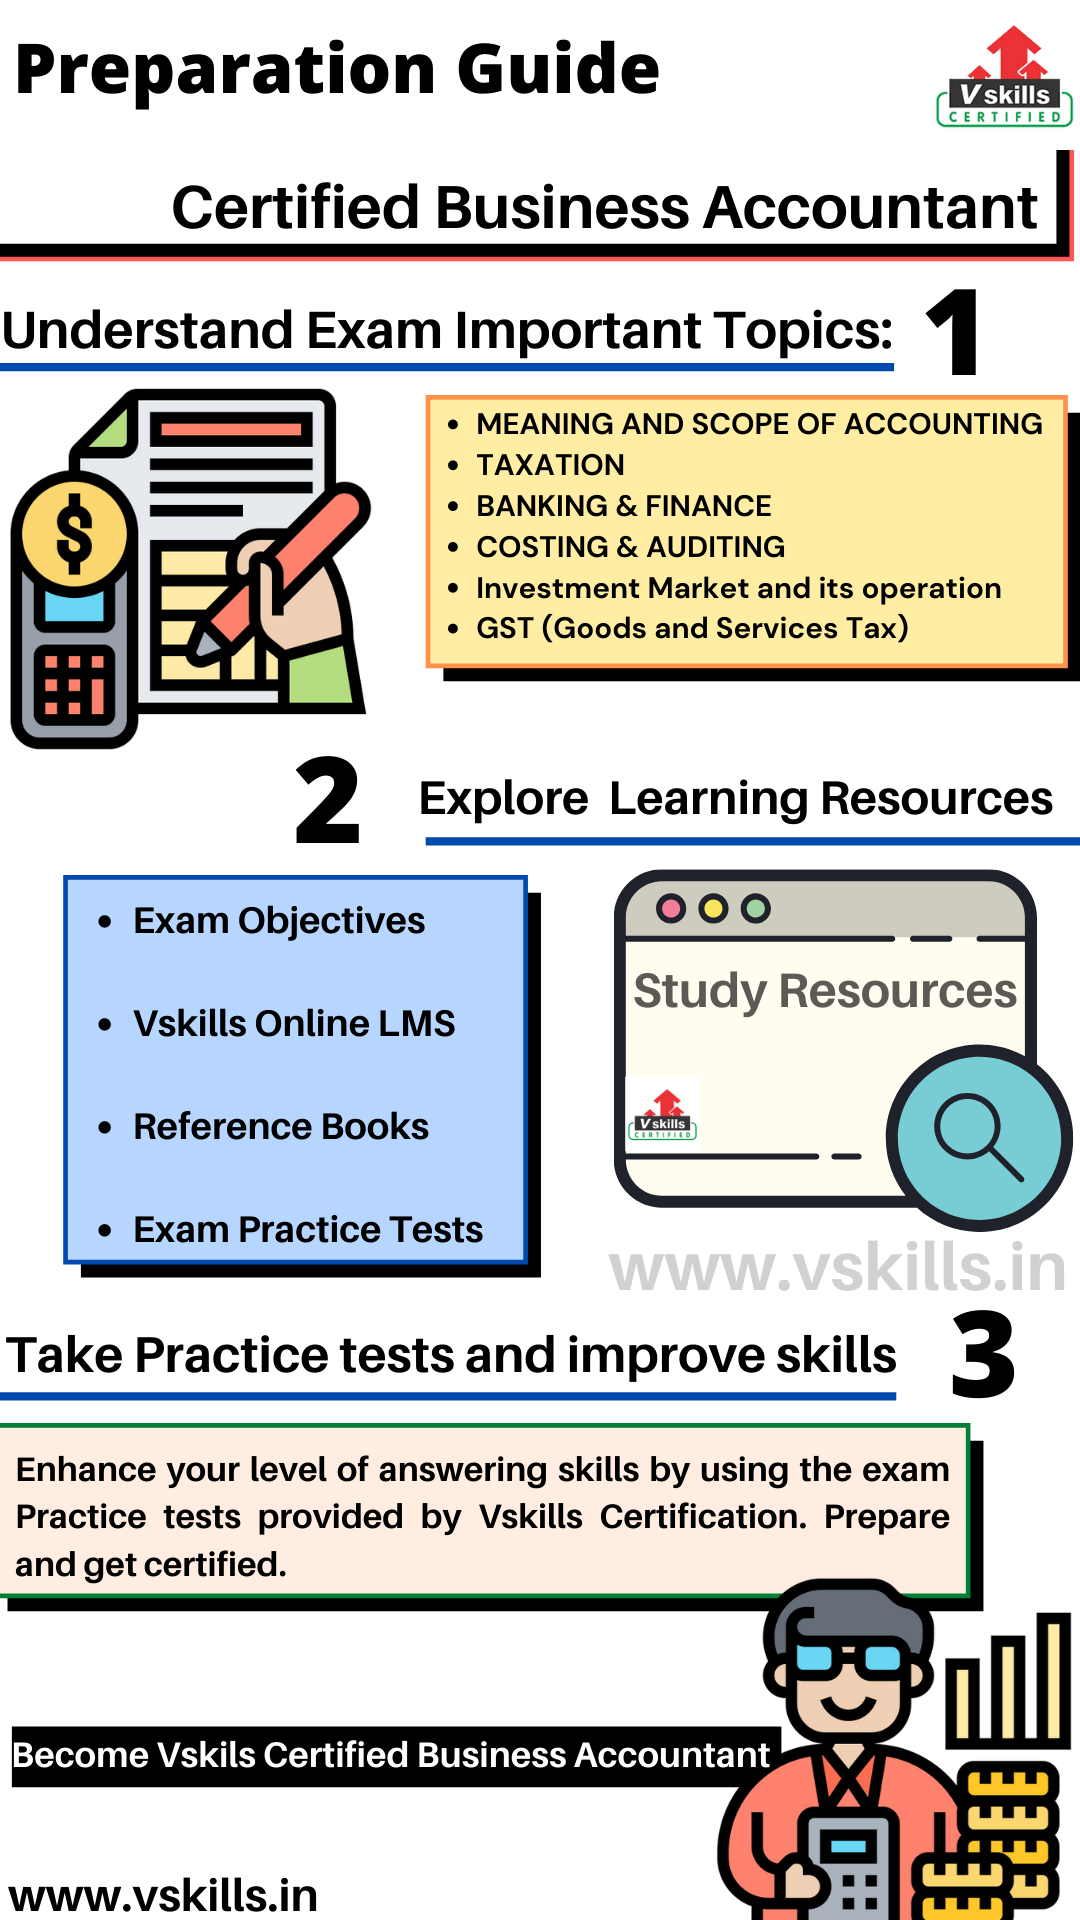 Certified Business Accountant study guide